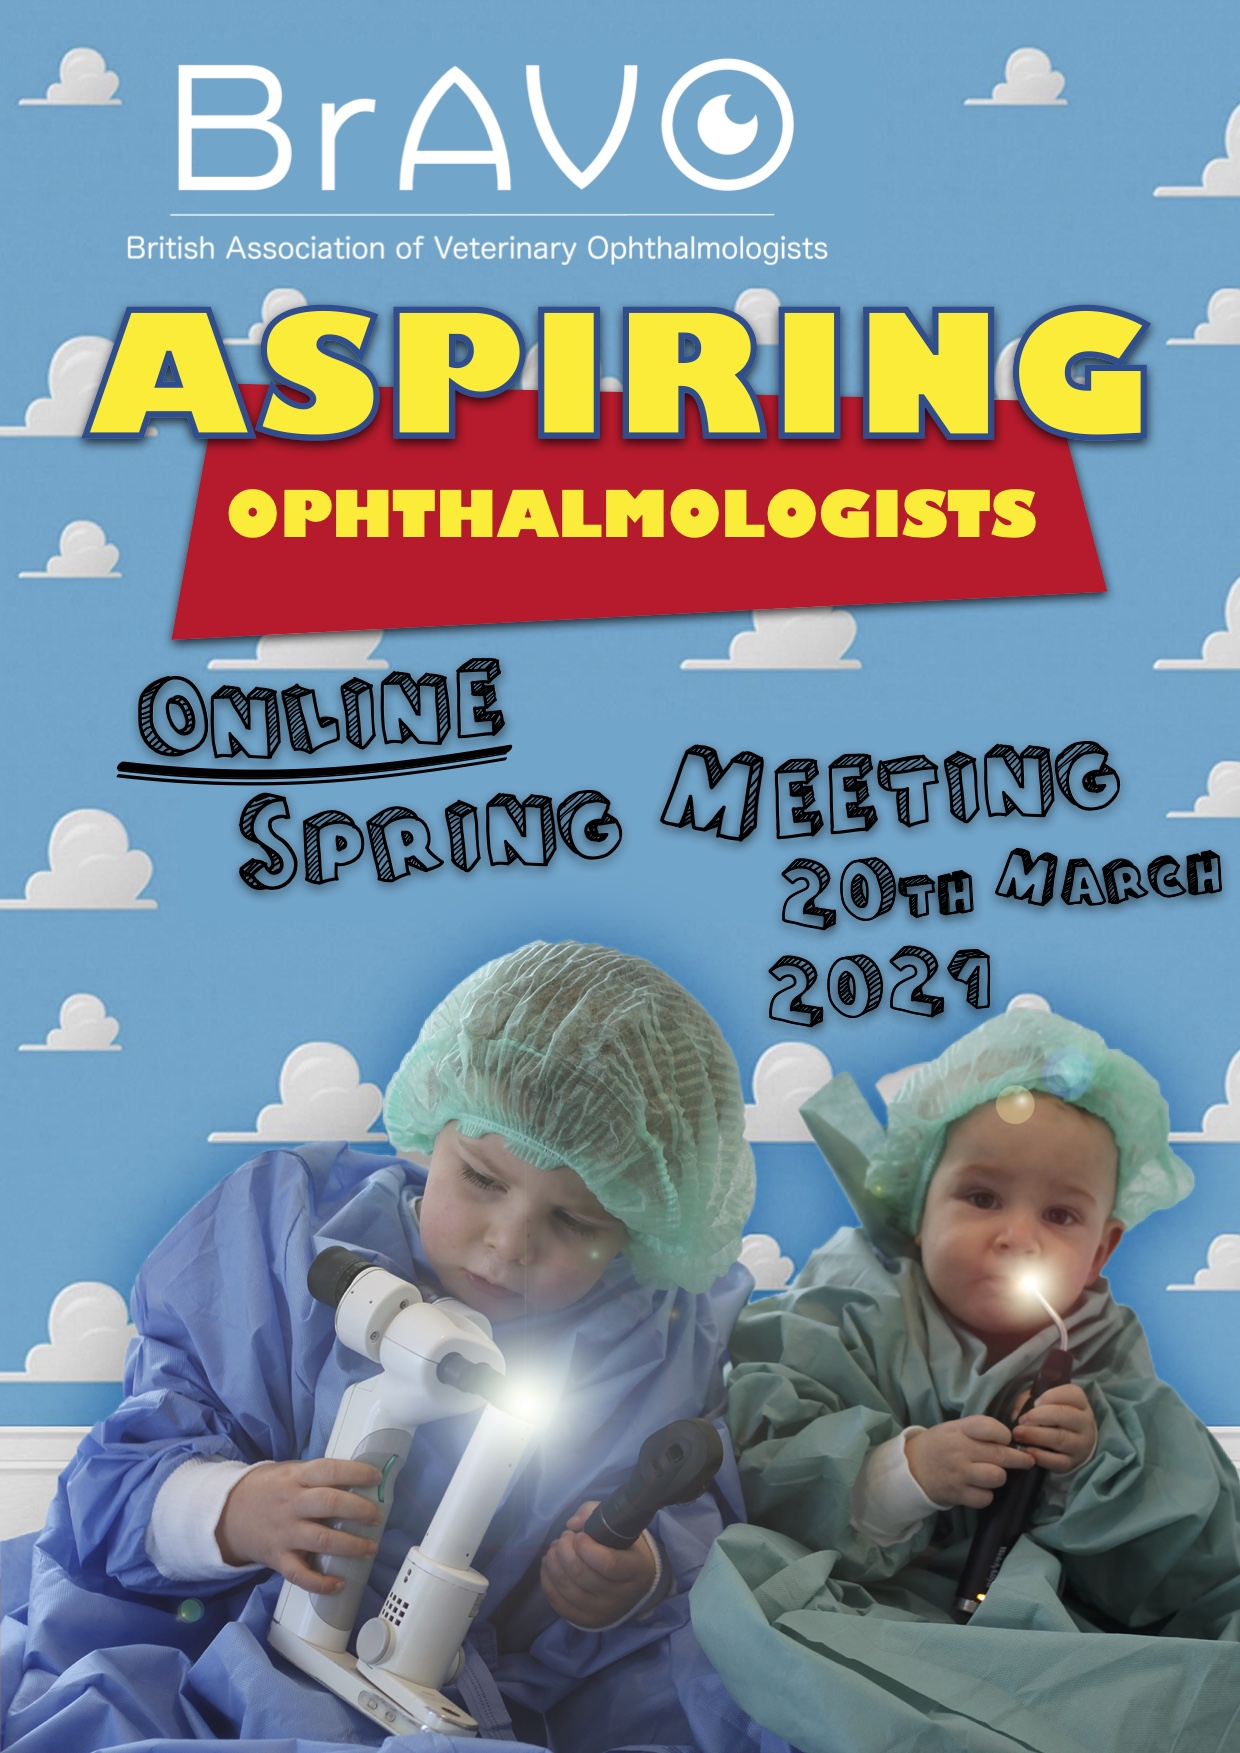 BrAVO Spring Meeting ONLINE – Aspiring Ophthalmologists